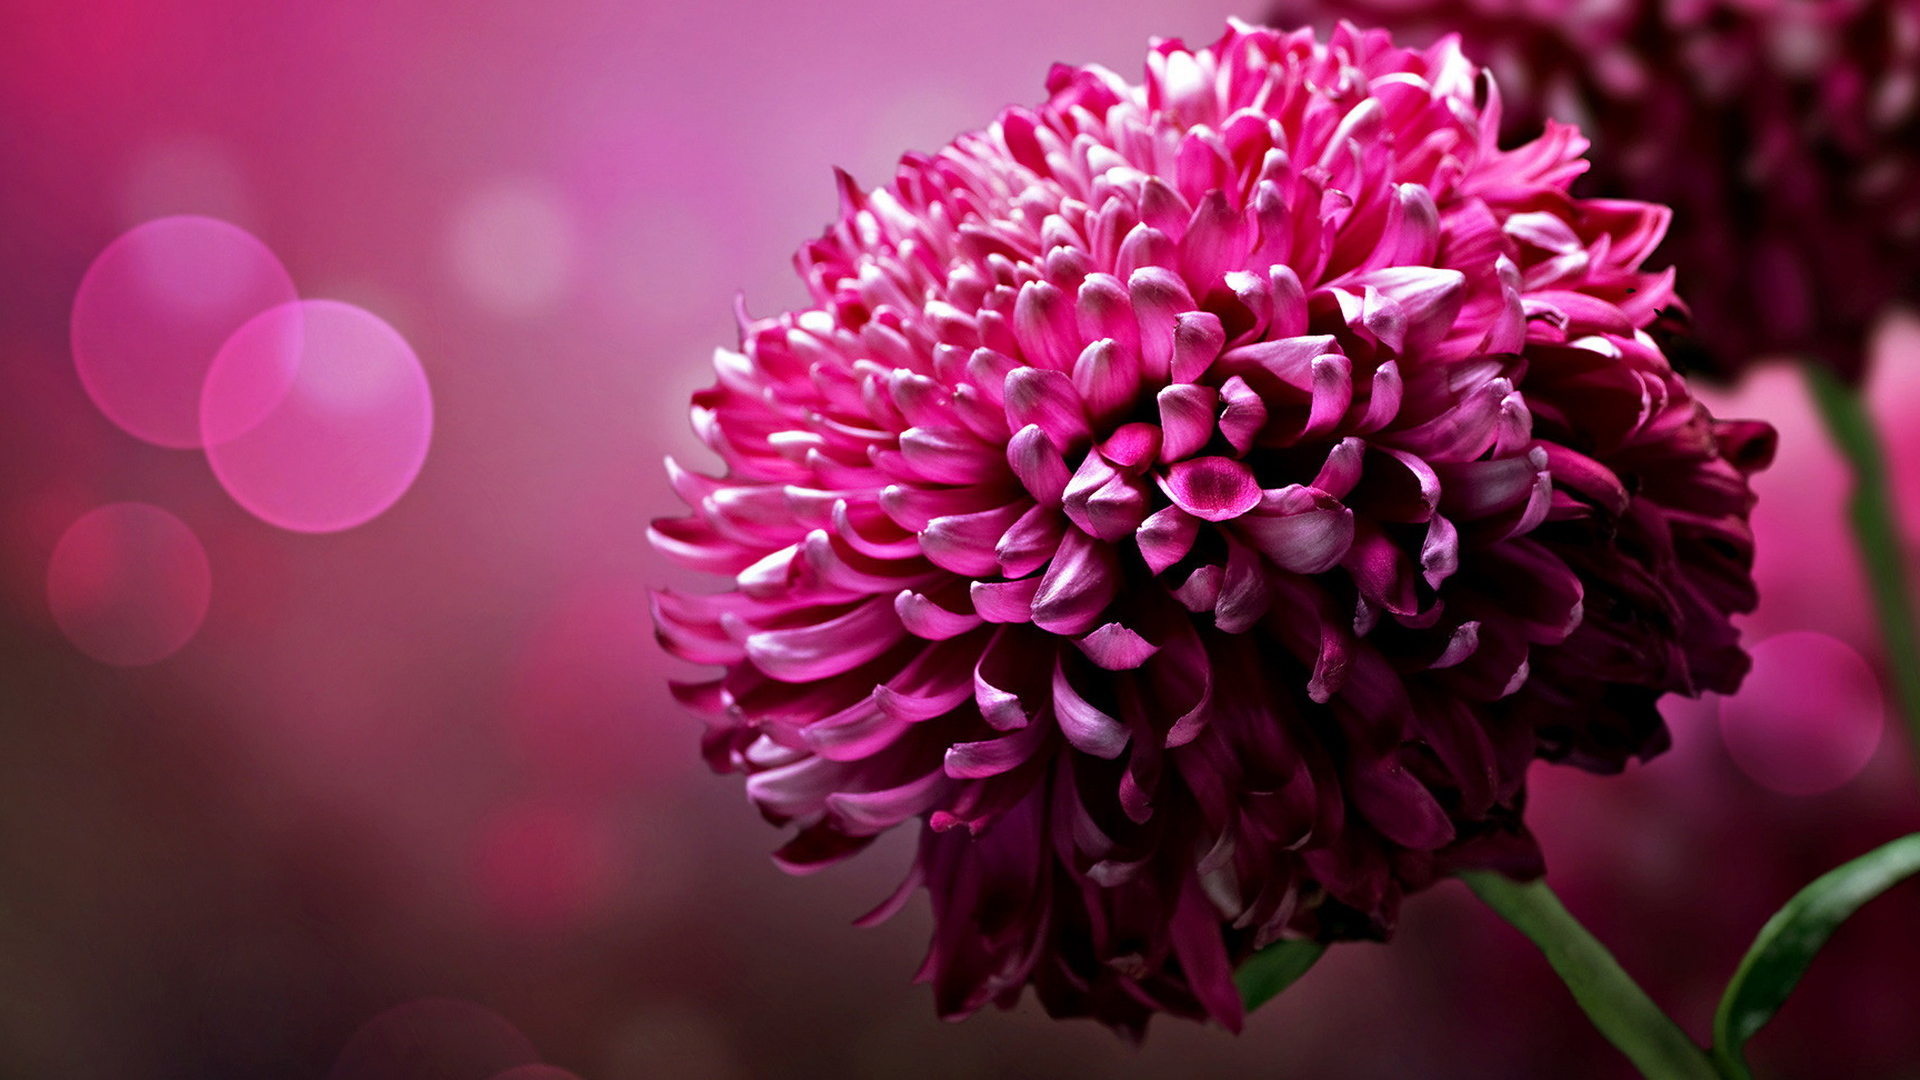 Large Flower Desktop Wallpapers 1920x1080